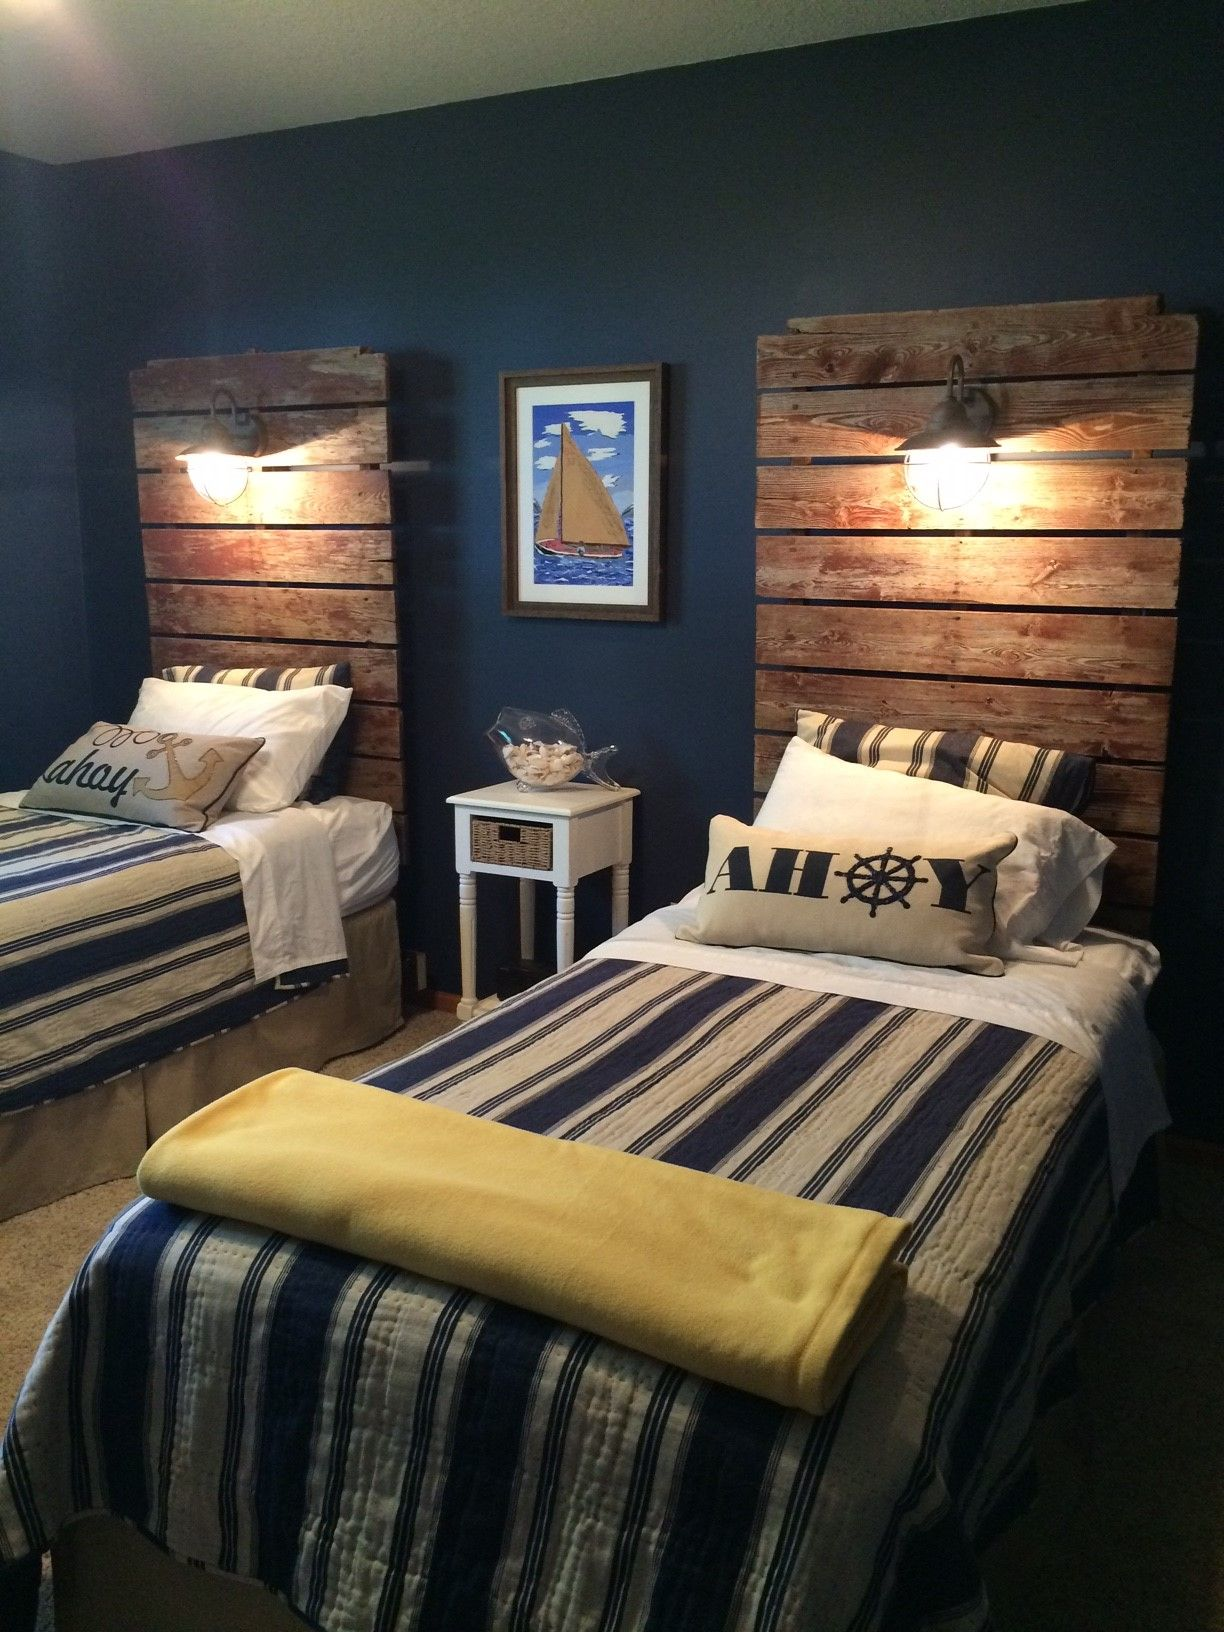 A Headboard With Overhead Light